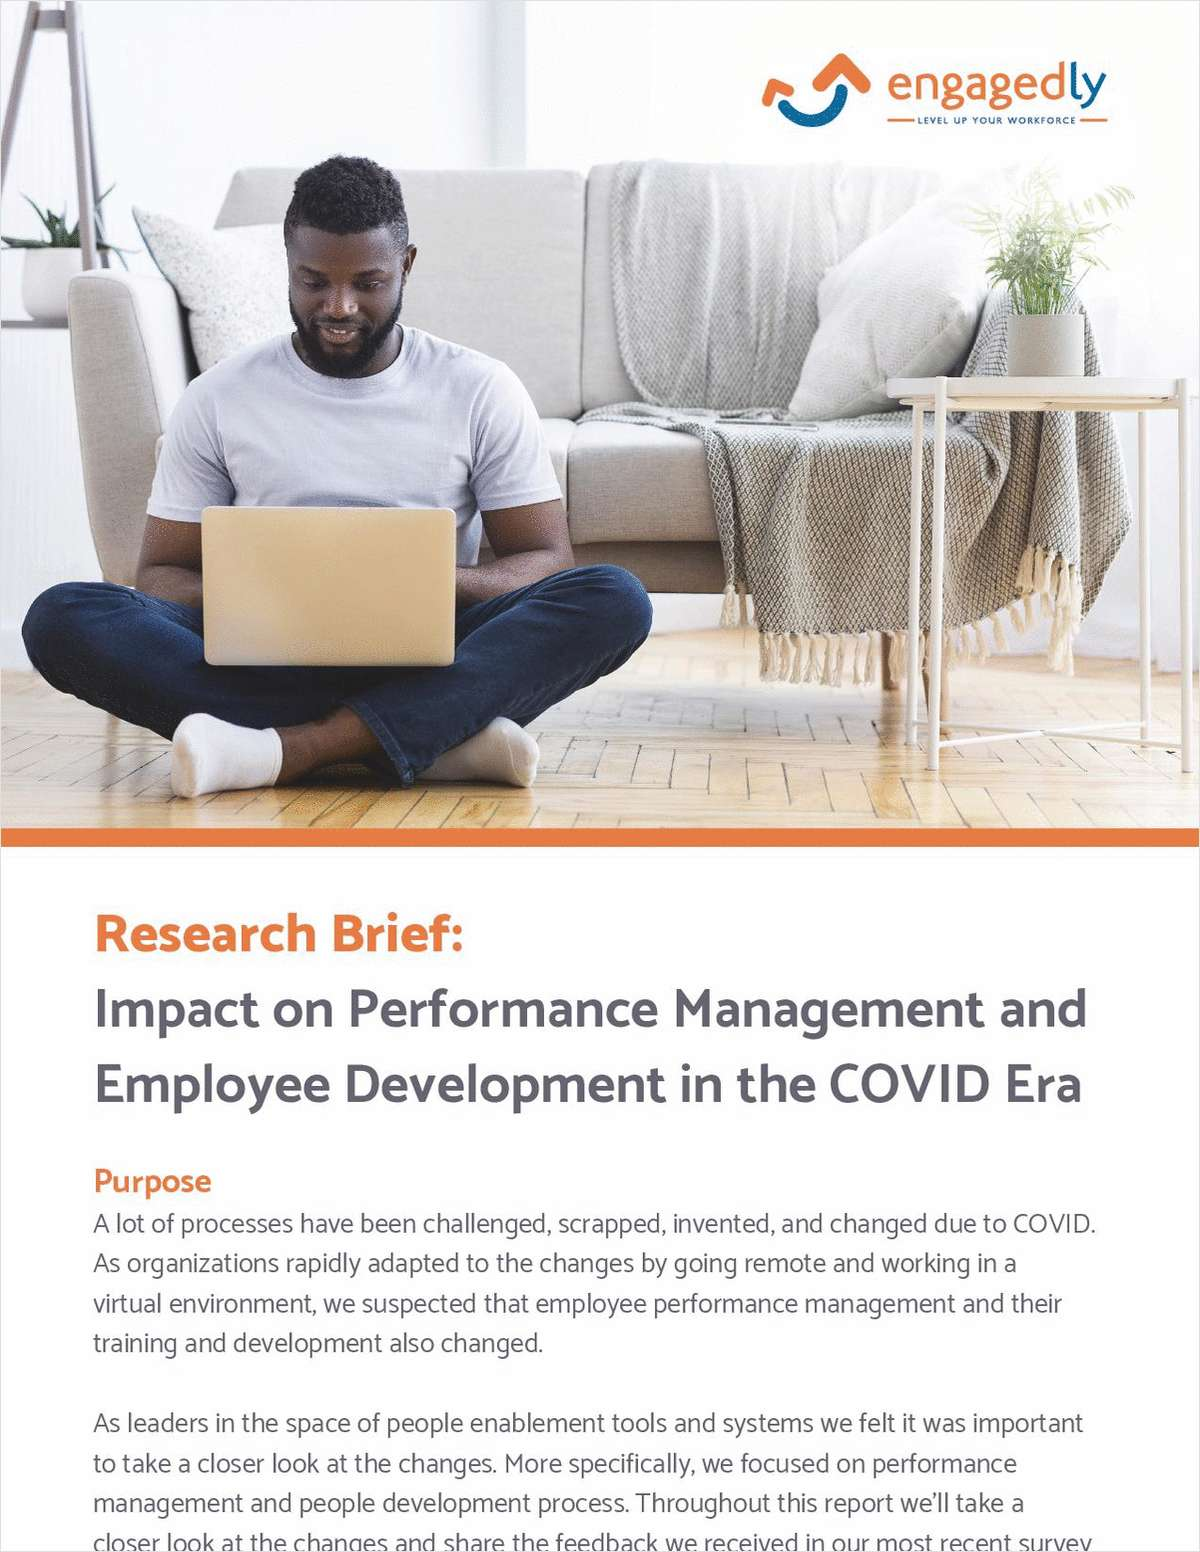 PERFORMANCE MANAGEMENT AND EMPLOYEE DEVELOPMENT IN THE COVID ERA